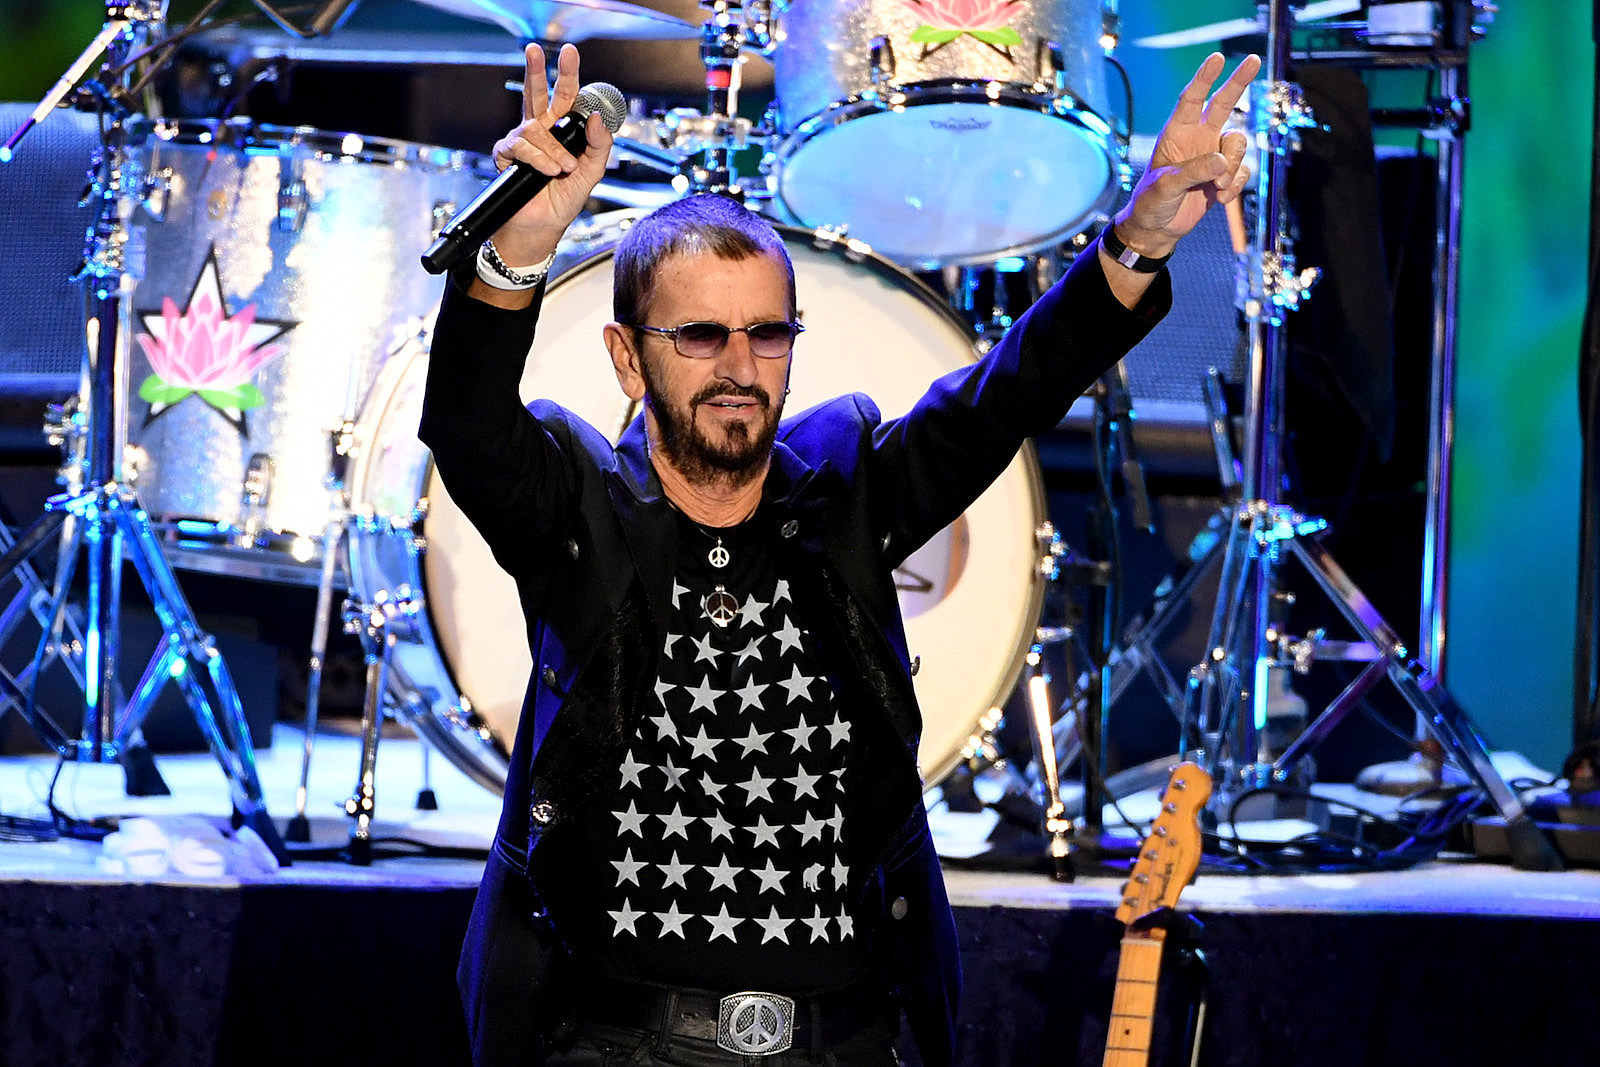 Ringo Starr's New Album Features a Very Special Beatles Moment